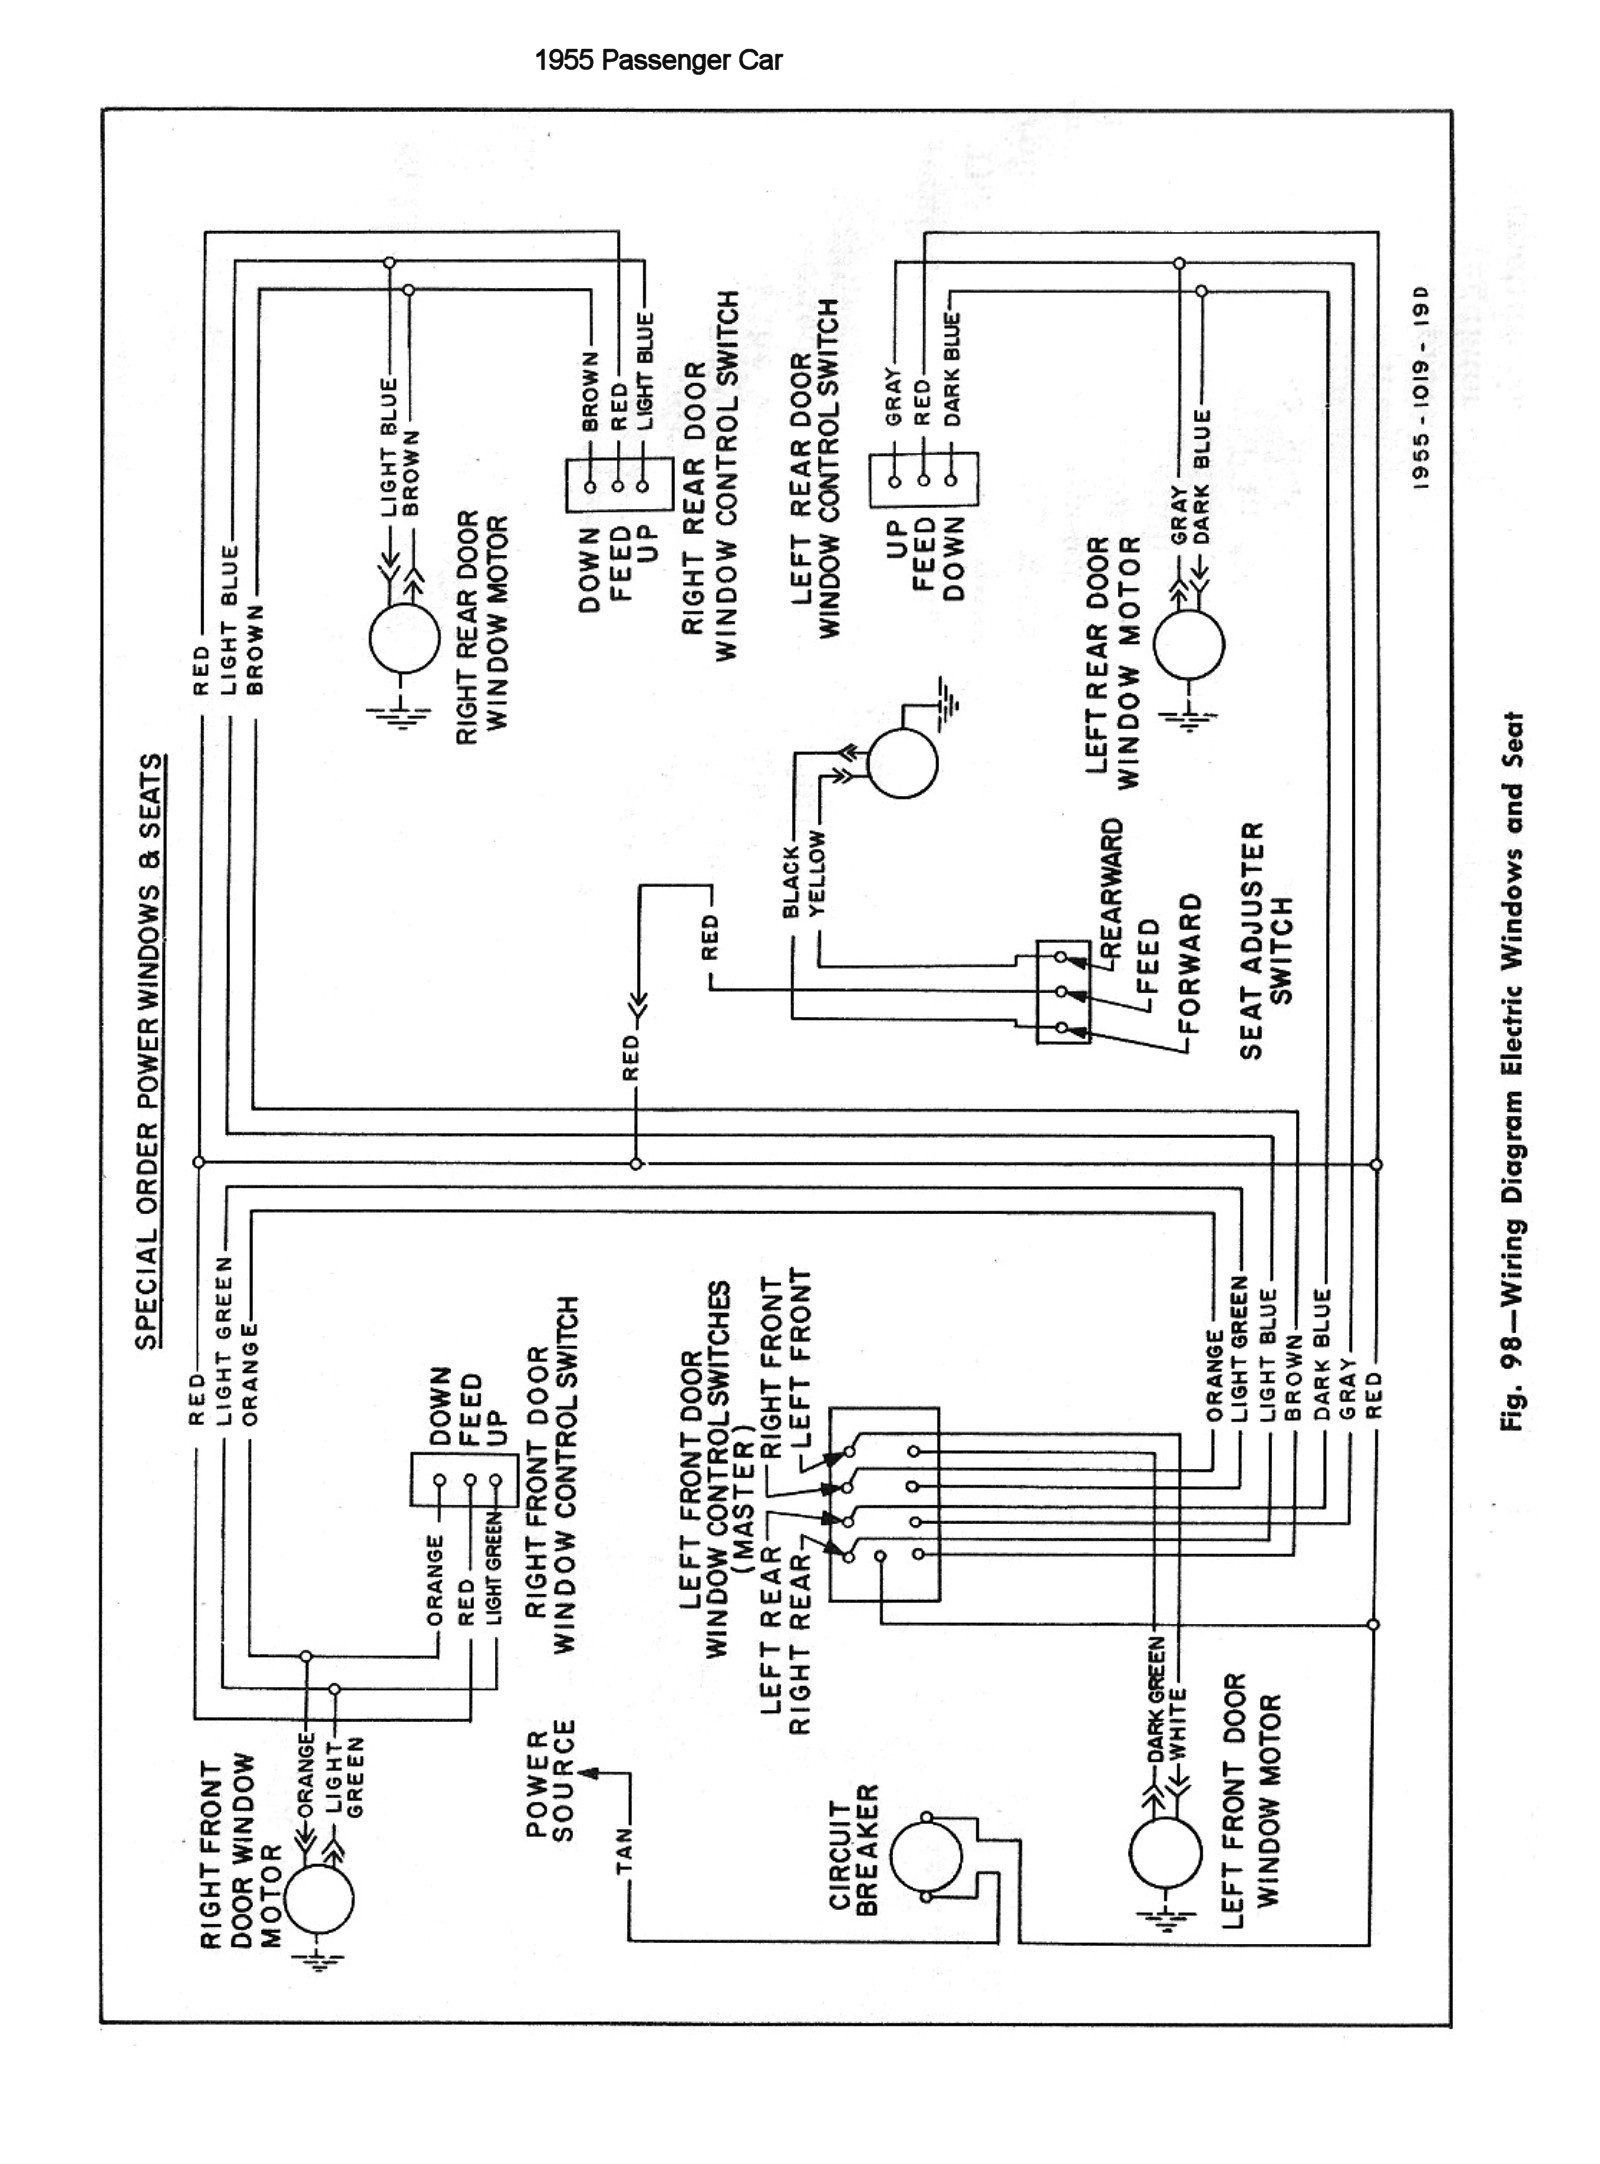 1955 chevy turn signal wiring diagram wiringdiagram org 55 chevy headlight switch wiring 1955 chevy turn signal wiring diagram wiringdiagram org 1955 chevy, diagram